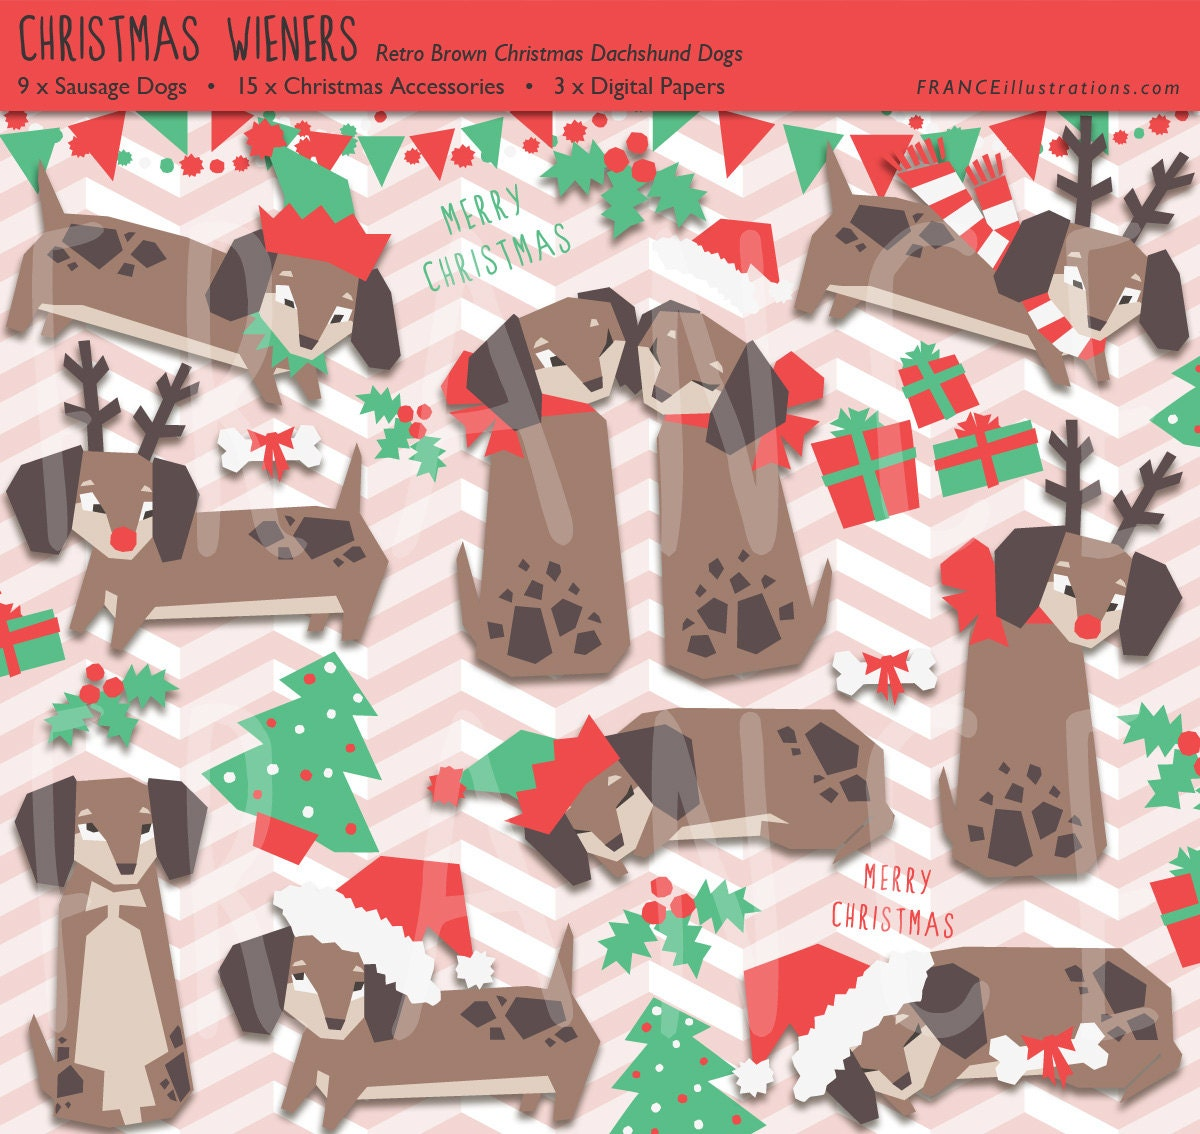 Scrapbook paper dogs - Christmas Clip Art Dachshund Sausage Dog Retro Xmas Cute Craft Scrapbook Printable Download Cheap Personal Commercial Use Paper